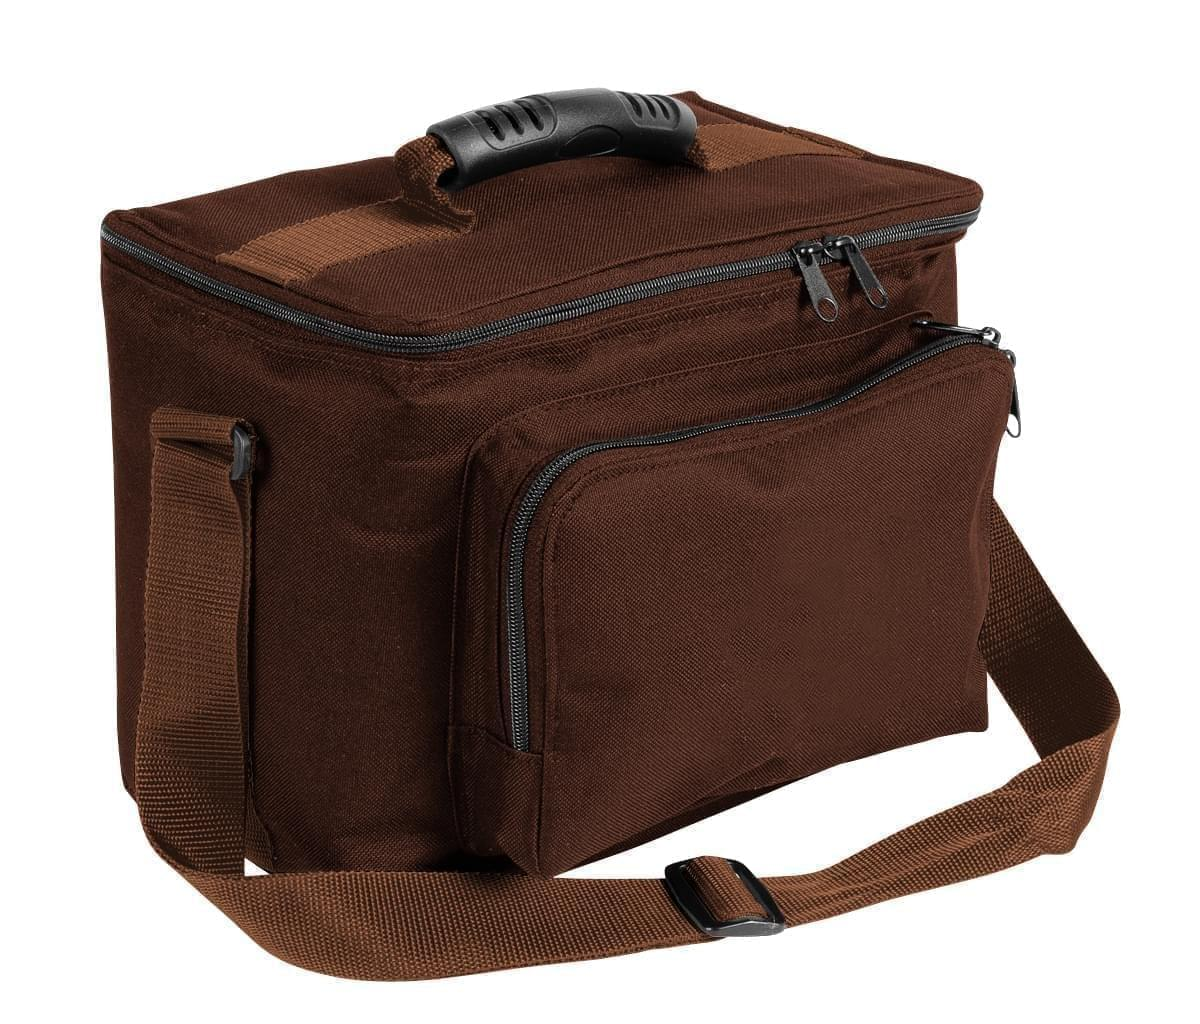 USA Made Nylon Poly Lunch Coolers, Brown-Brown, 11001161-APS